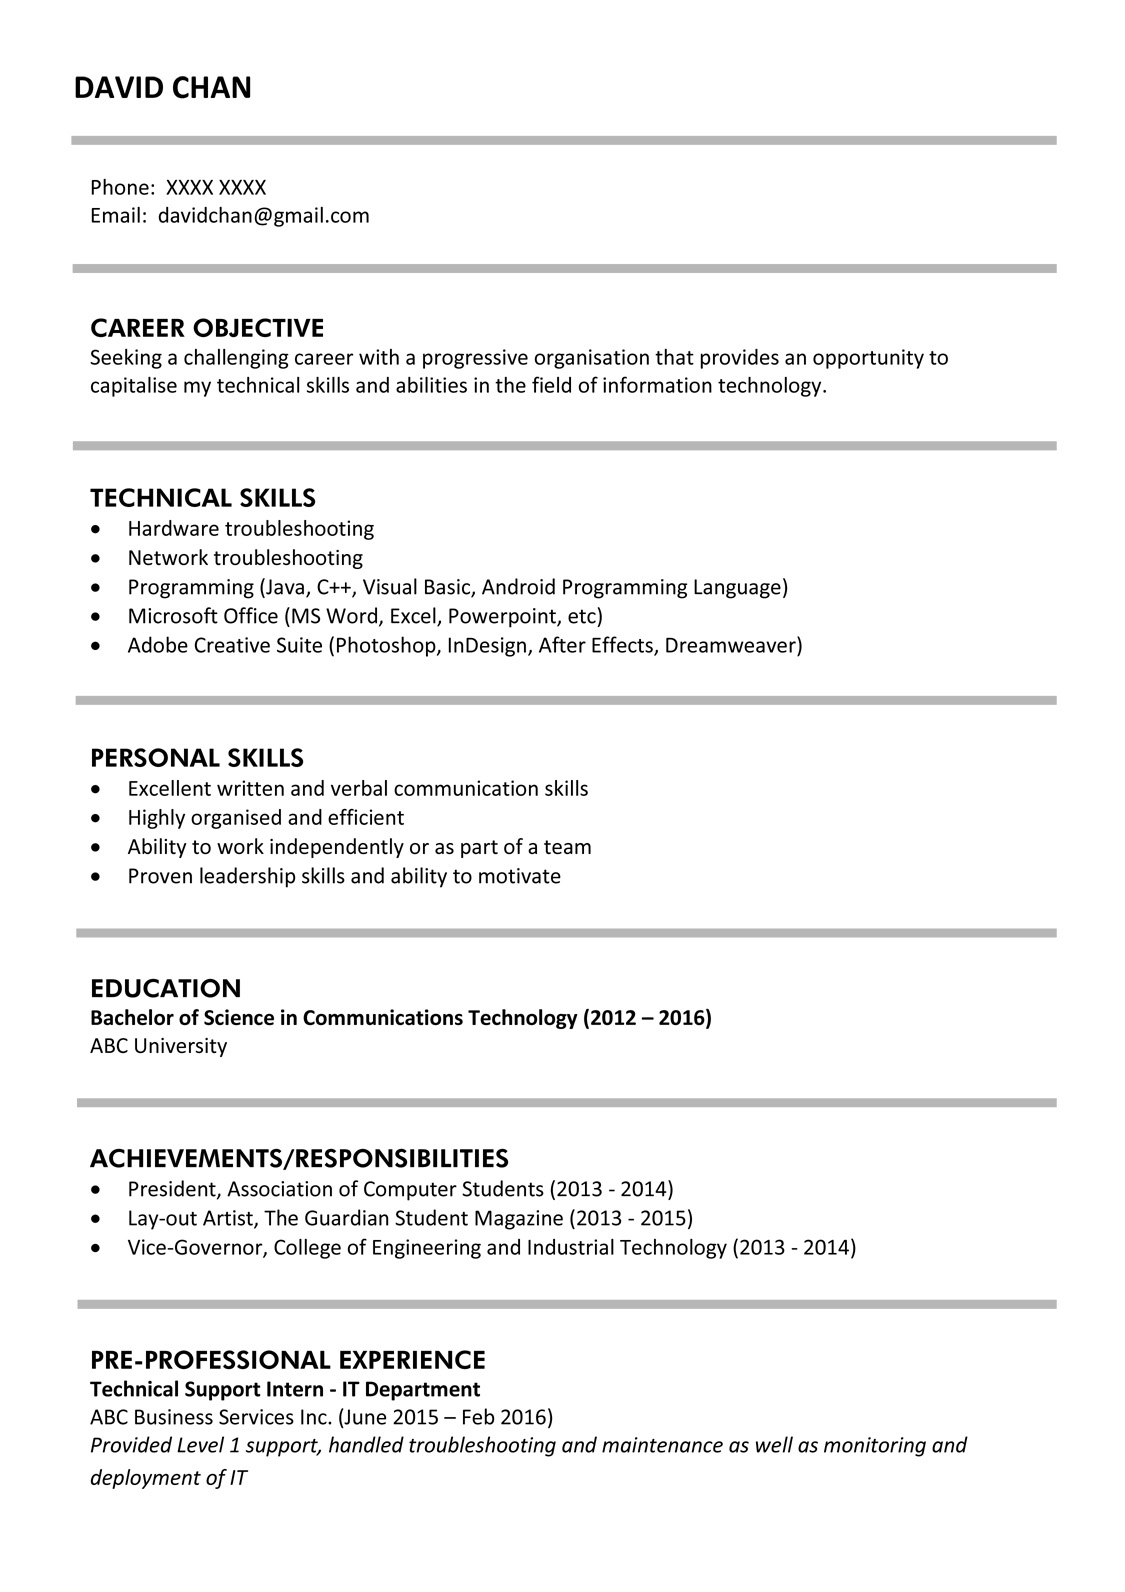 sample resume format 1 - Sample Resume Format For Freshers Engineers